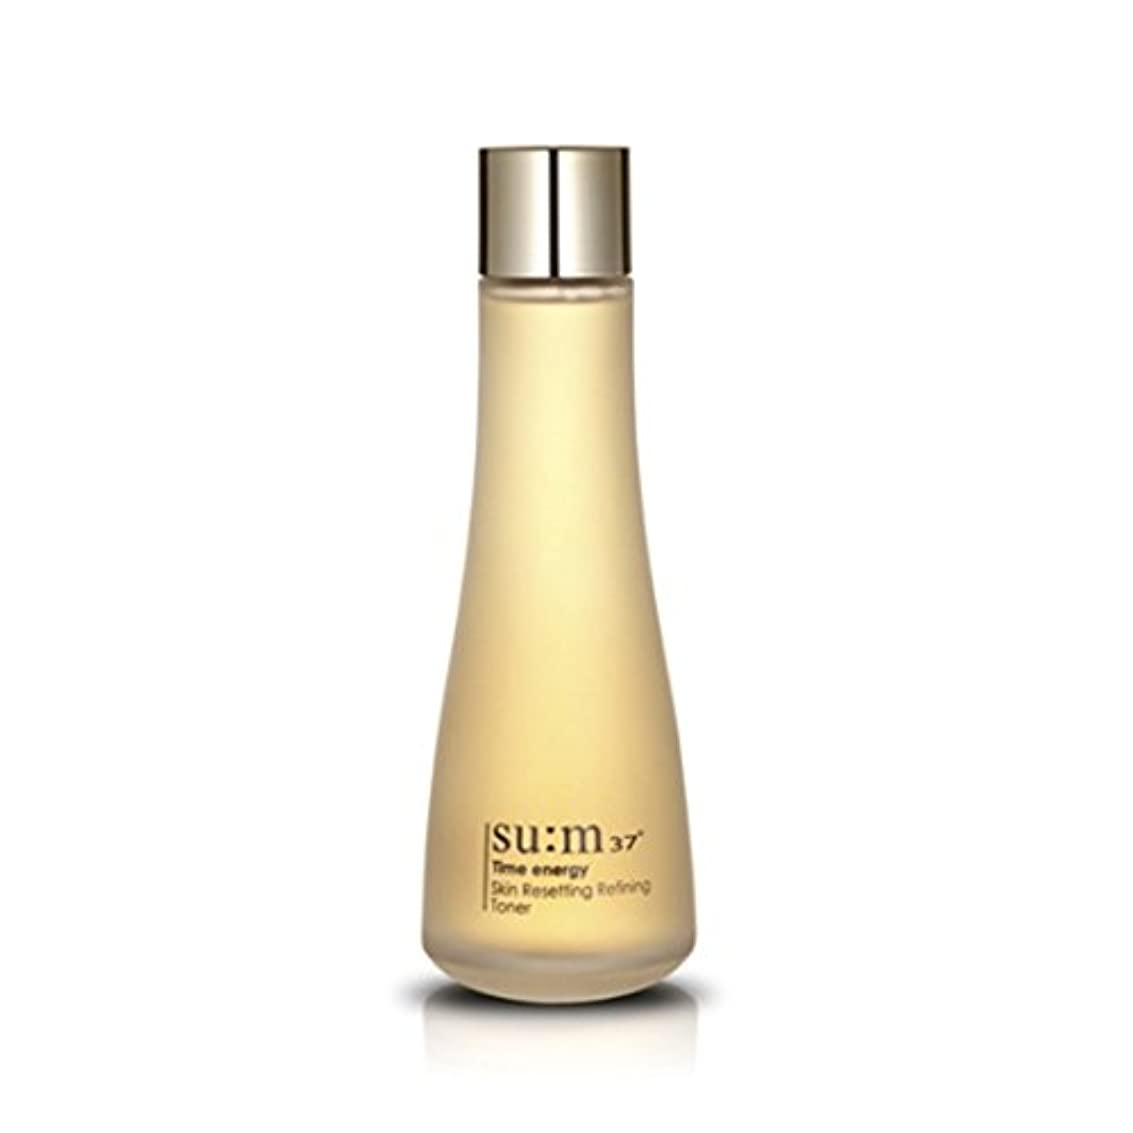 su:m37/スム37° スム37 タイムエナジーリファイティングトナー160ml (sum 37º Time energy Skin Resetting Refining Toner 160ml + Special Gift...